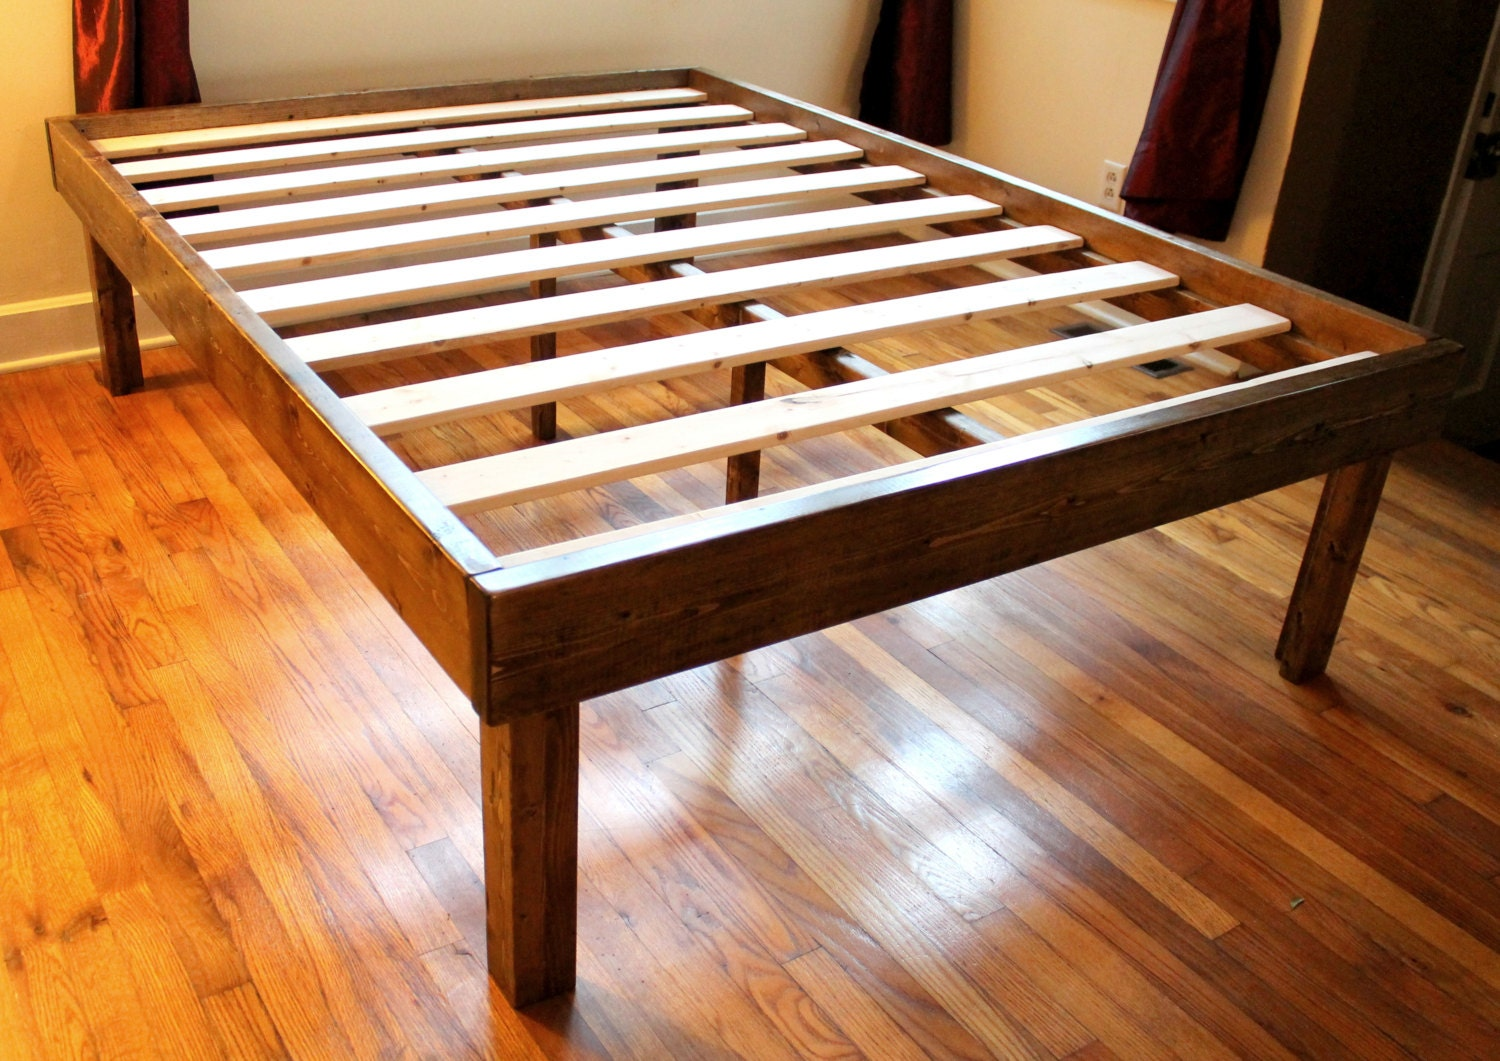 zoom - Wooden Twin Bed Frame